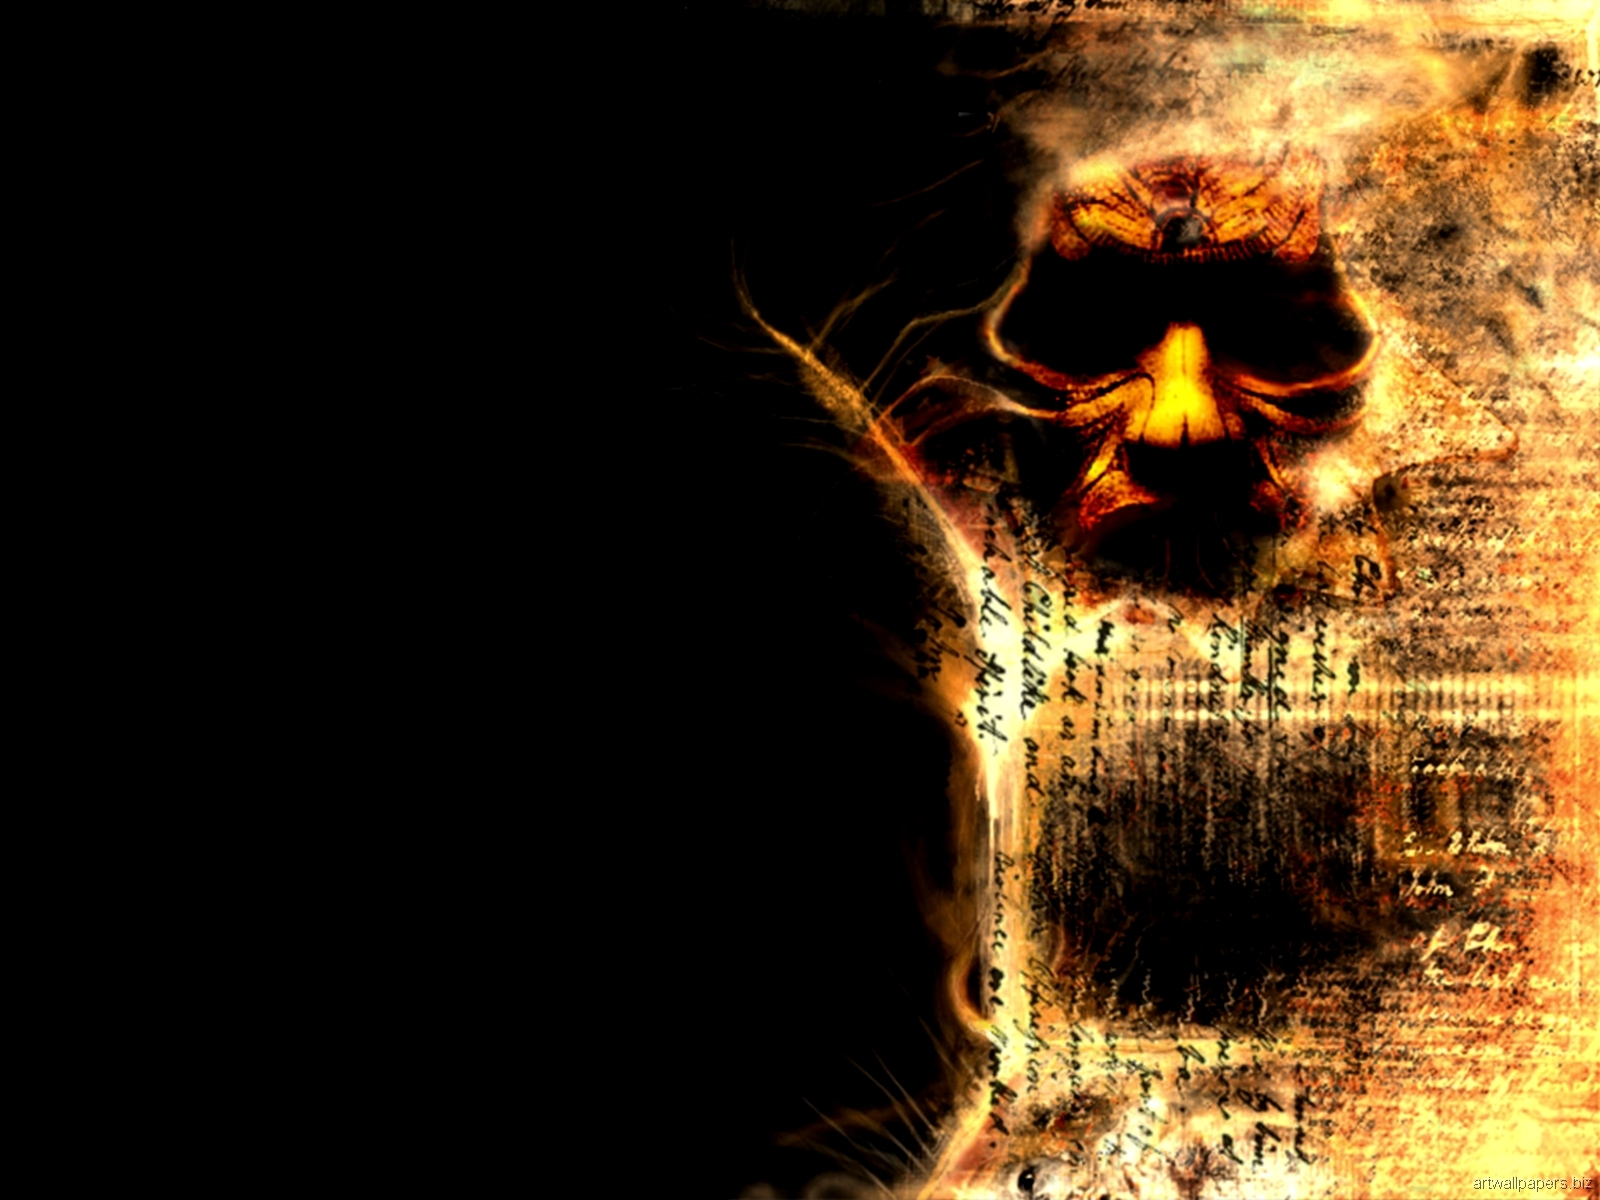 Skull wallpapers for desktop wallpapersafari - Desktop wallpaper 1600x1200 ...